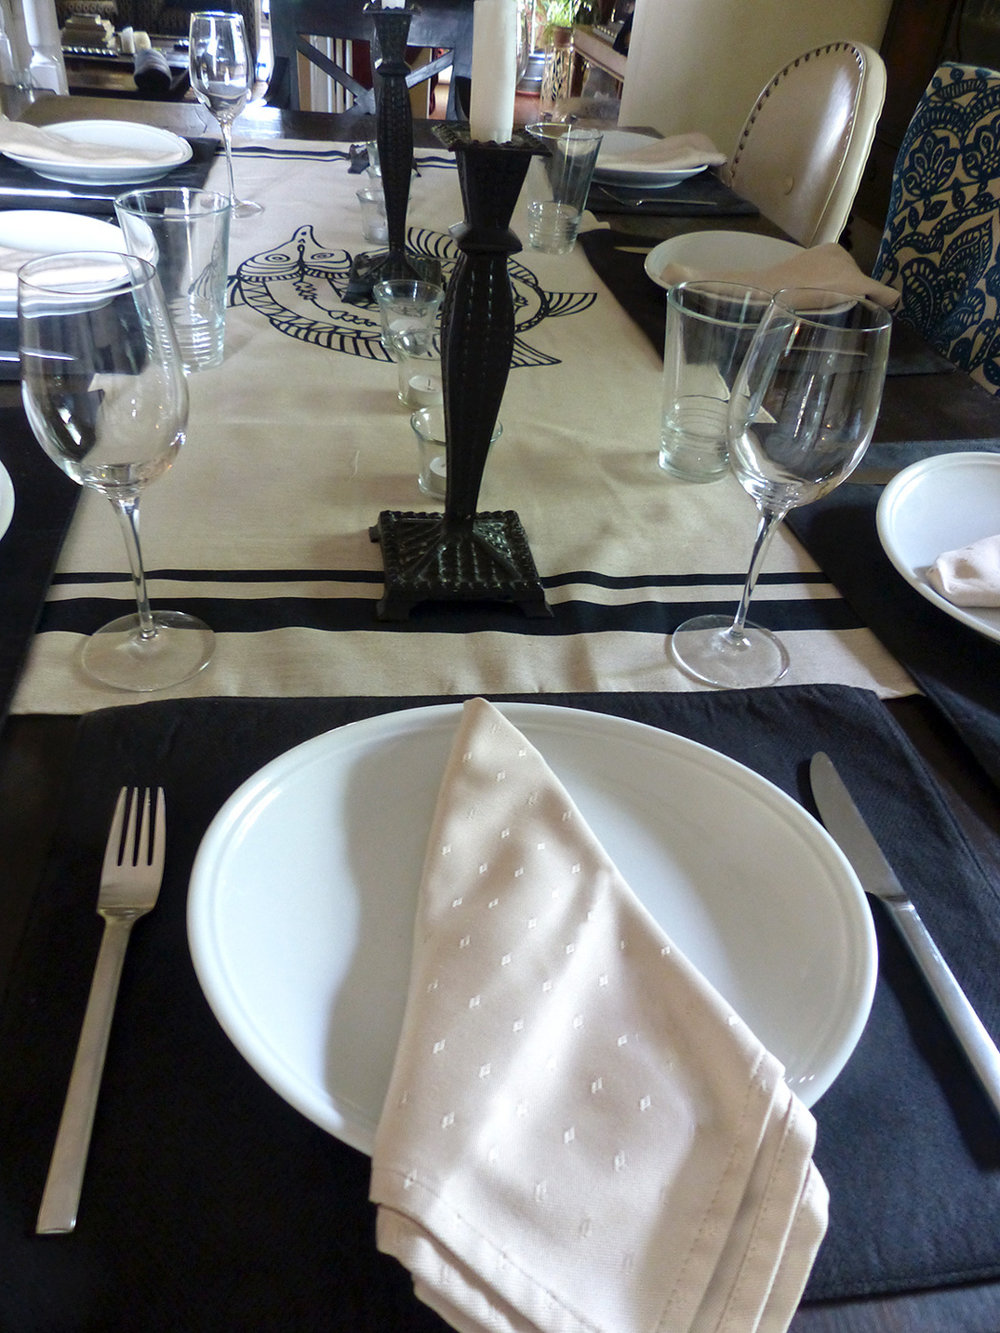 Notice that the same black placemat as in the casual setting but these are positioned horizontally.